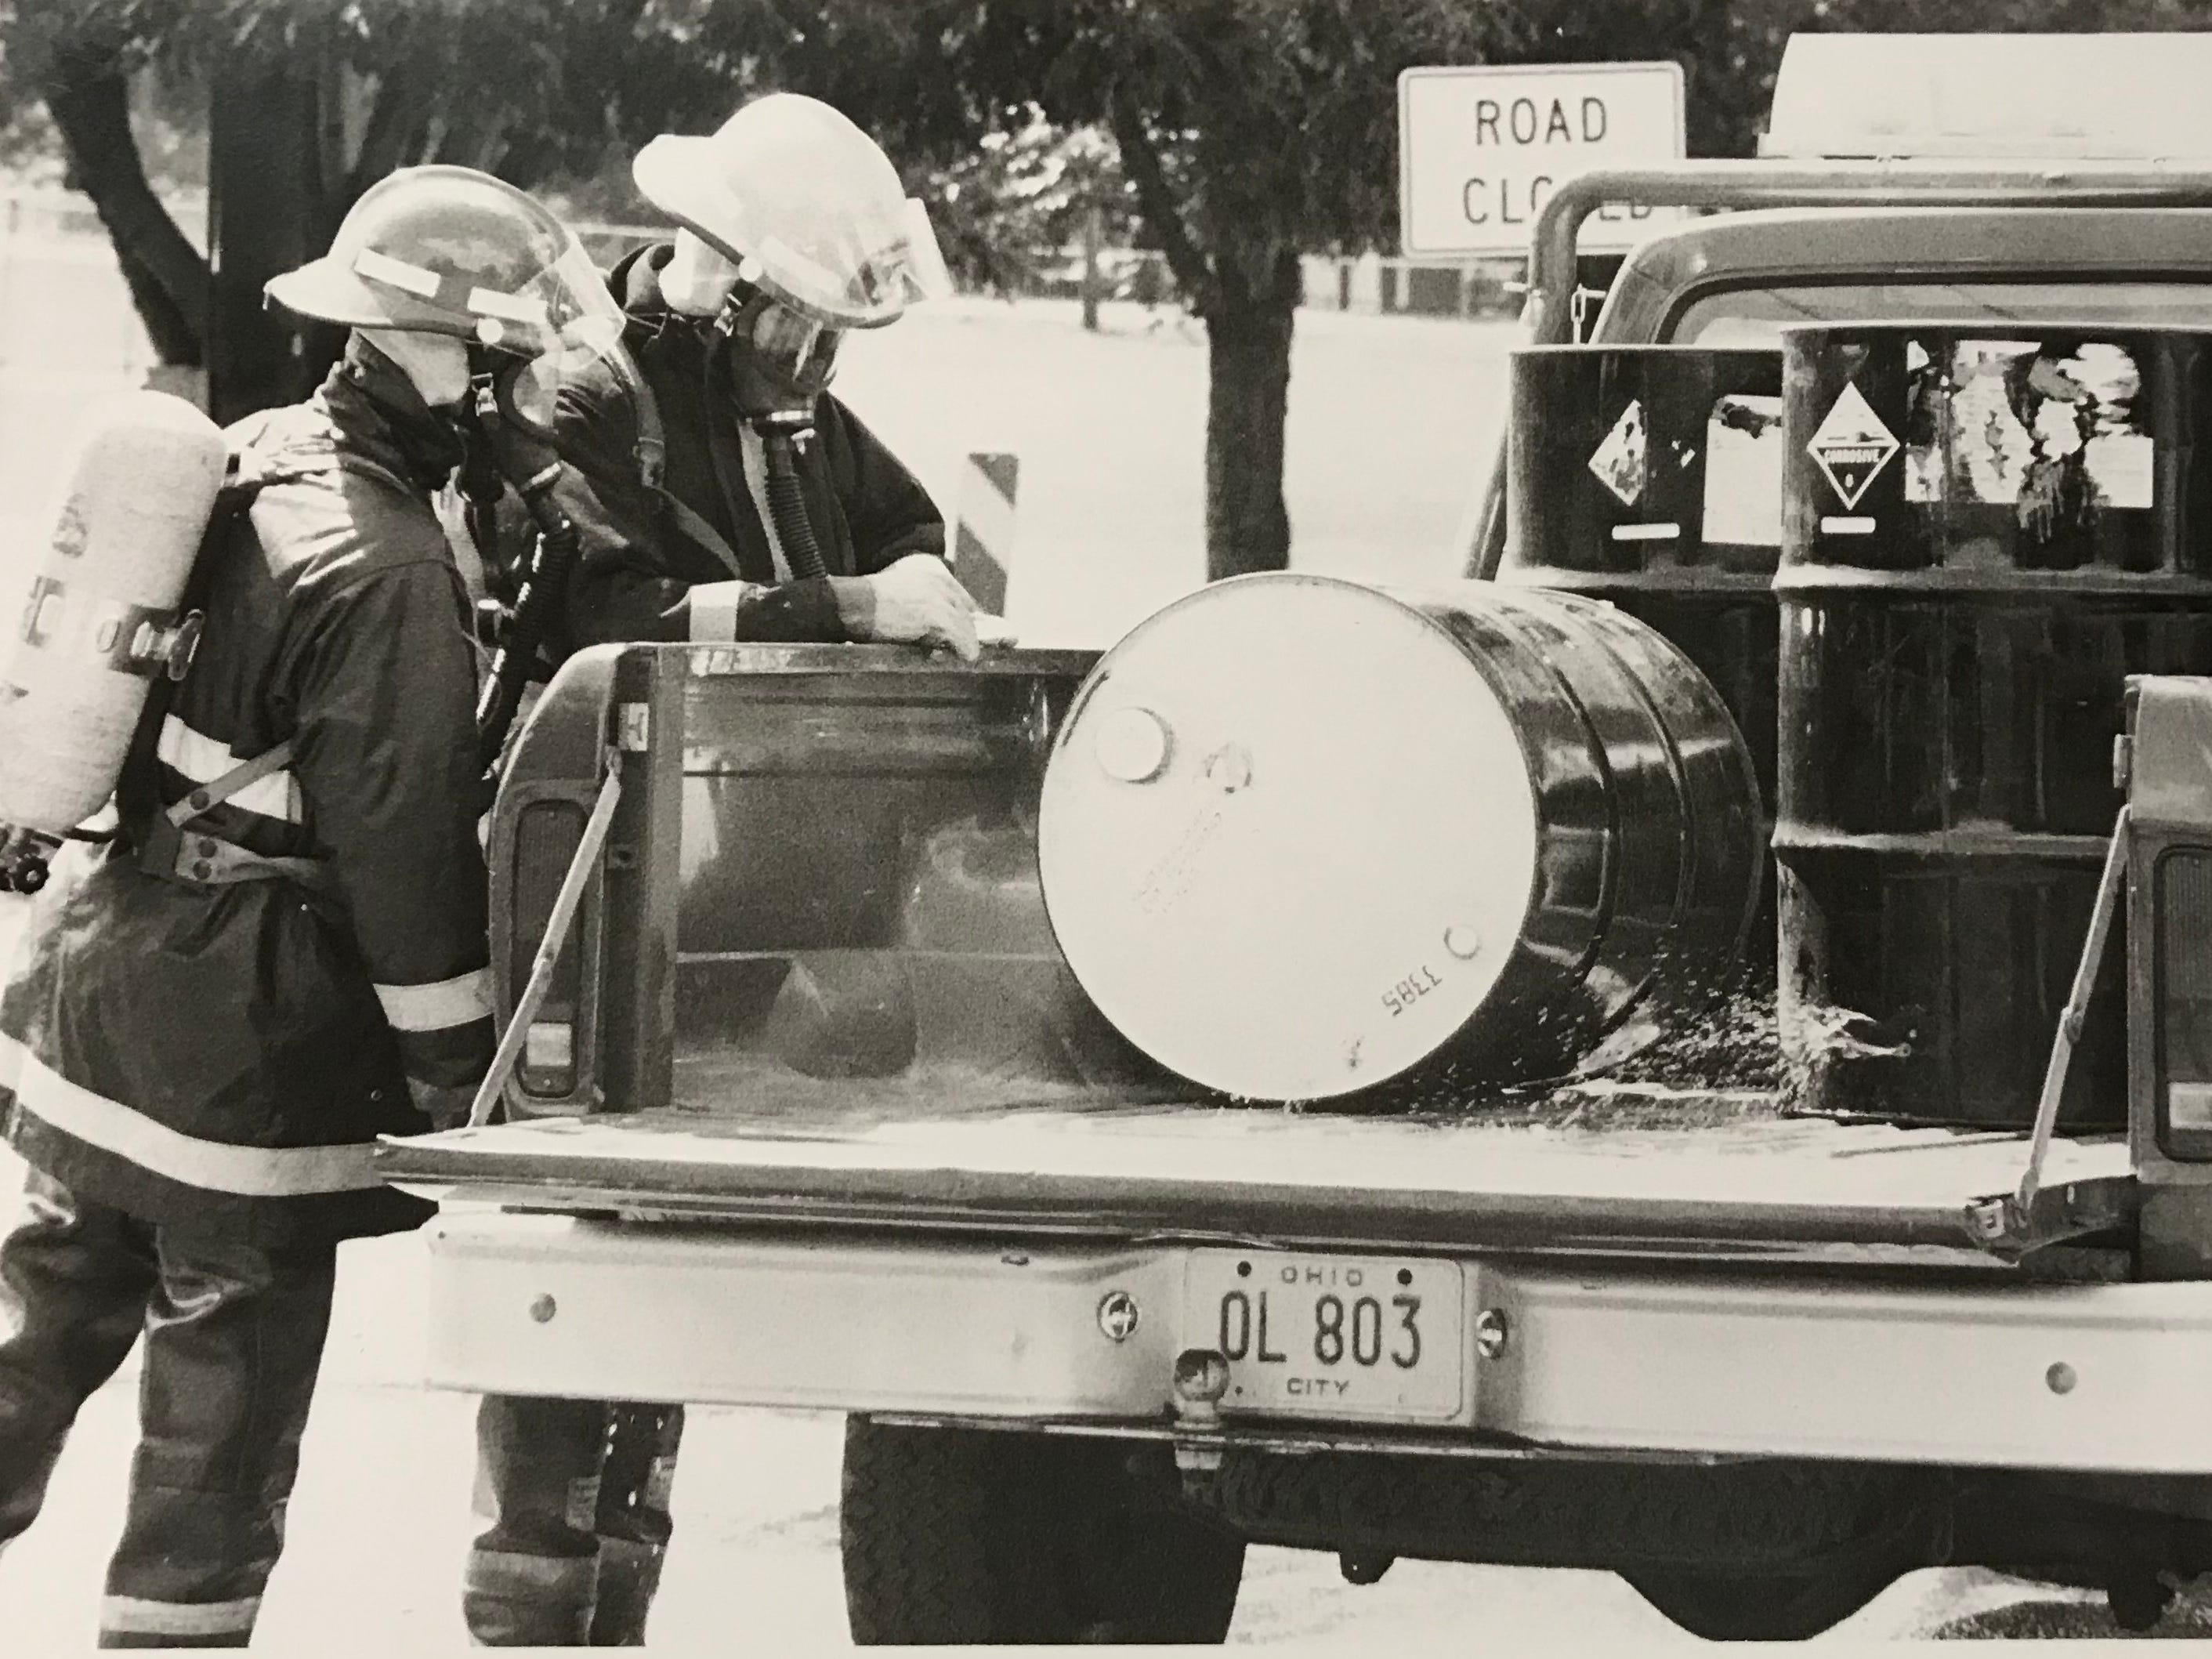 Chillicothe firefighters address corrosive materials spilled in the back of a truck in September 1983.